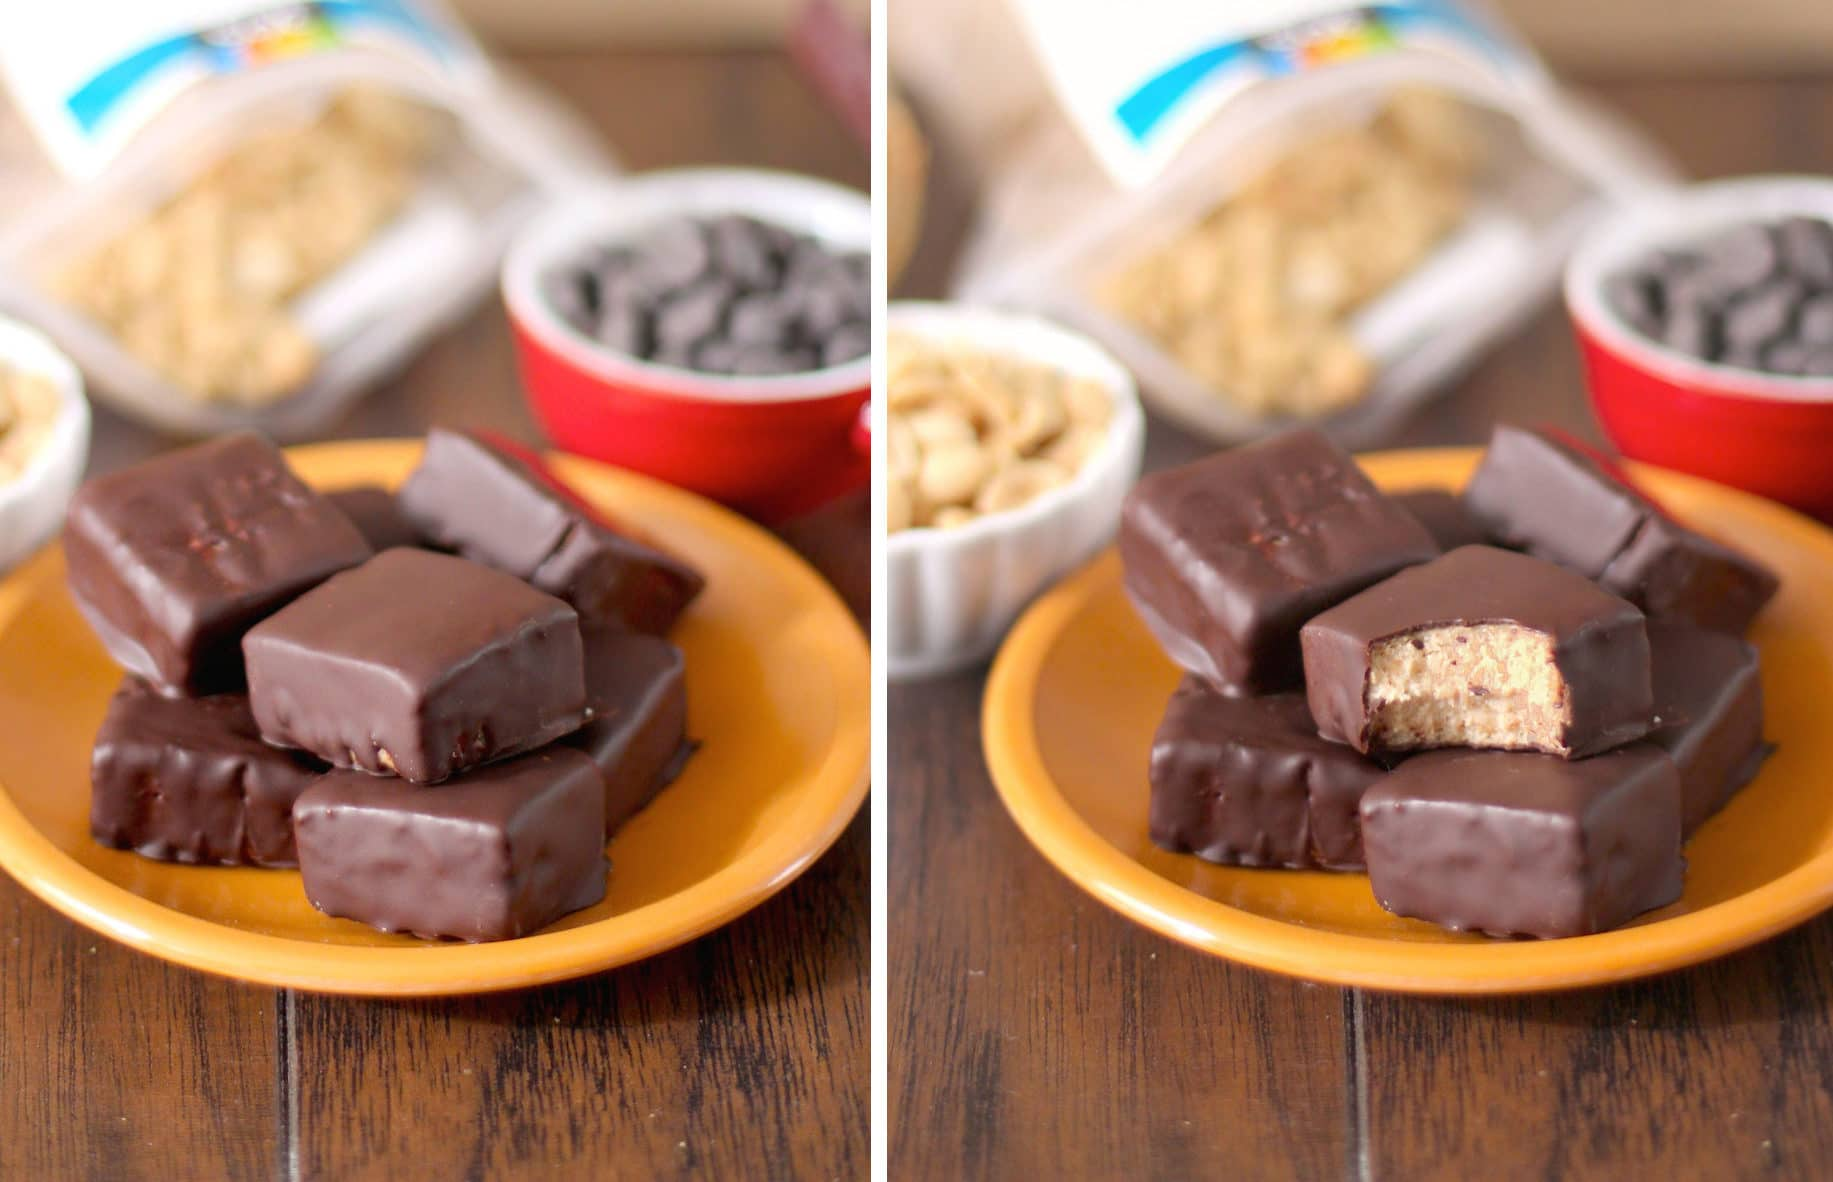 This Healthy Reese's Fudge is packed with peanut butter and chocolate flavor, you'd never know it's low sugar, low fat, high protein, and gluten free! -- Healthy Dessert Recipes at The Desserts With Benefits Blog